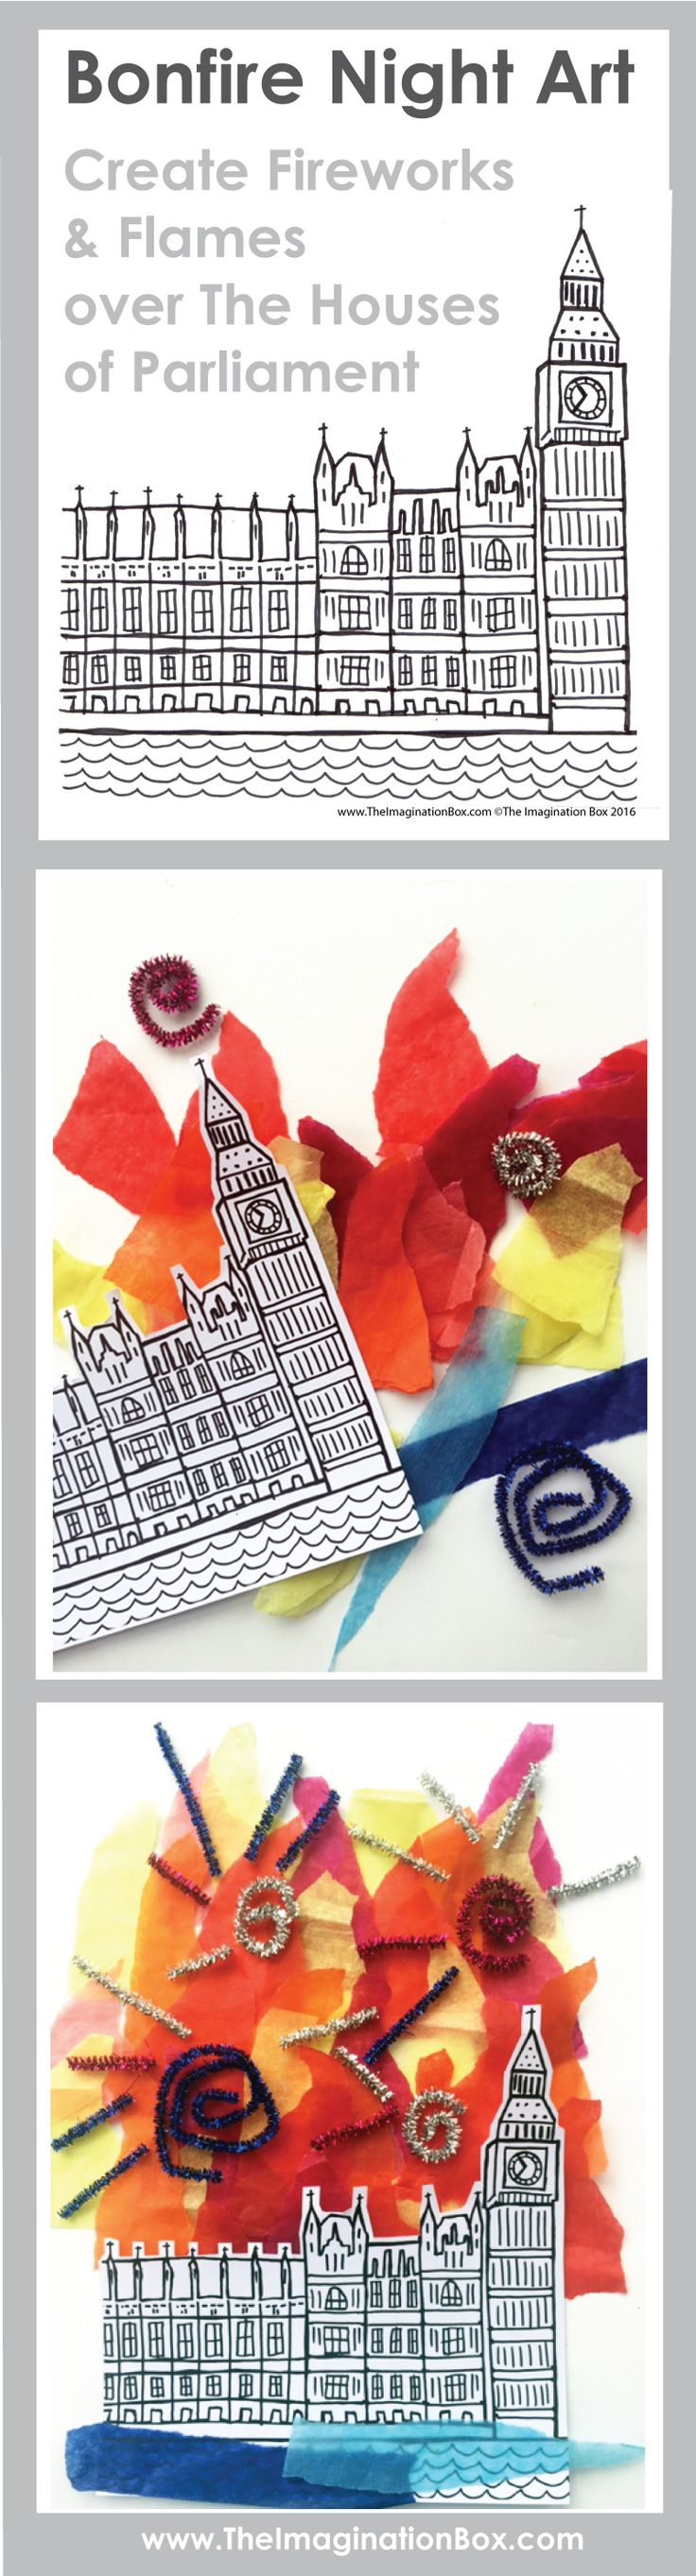 Celebrate Bonfire Night / Guy Fawkes Night / The Fifth of November. Use this quirky hand drawn template to create imaginative flames and fireworks over the London Houses of Parliament